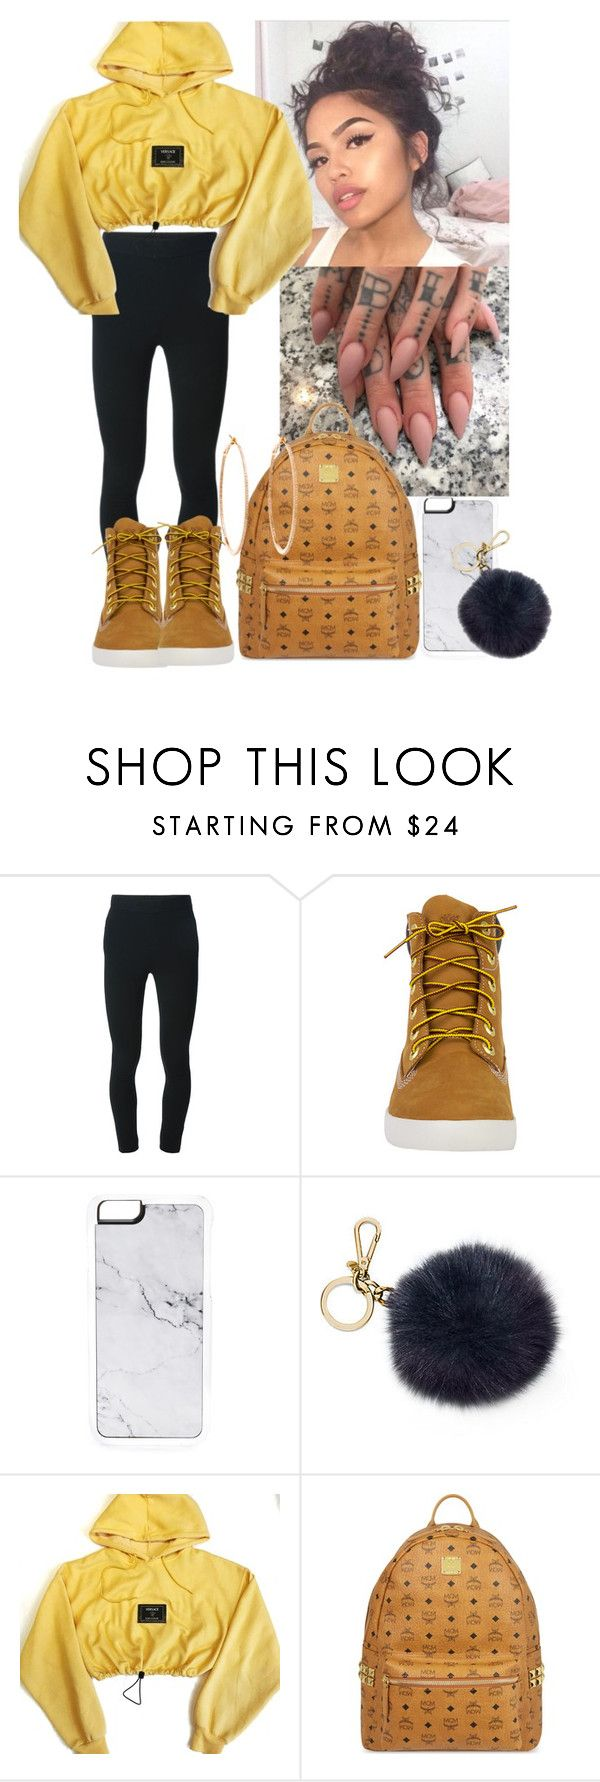 """""""Trill outfit #25"""" by msixo ❤ liked on Polyvore featuring Givenchy, Timberland, Zero Gravity, Michael Kors, Versace, MCM and Rosa de la Cruz"""